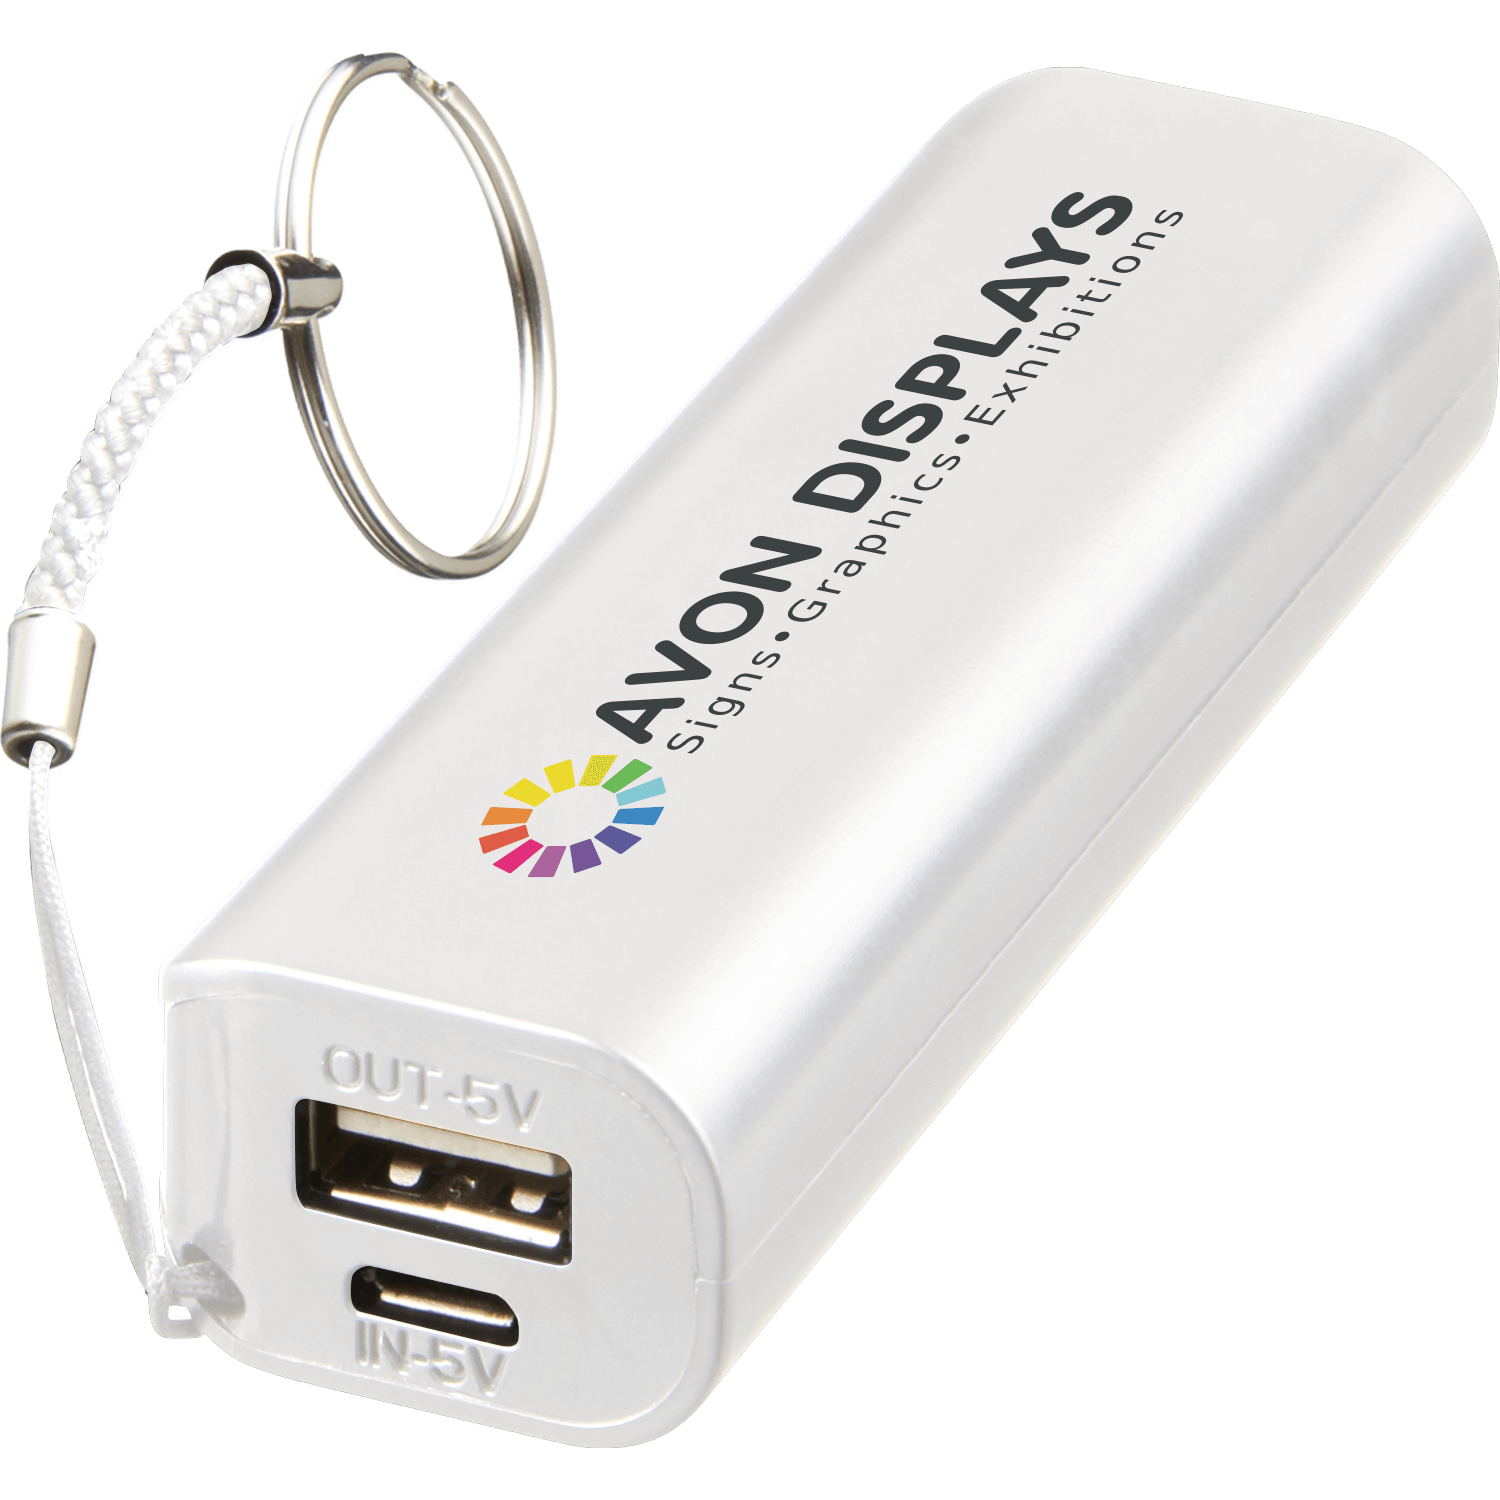 Apollo Power Bank Charger 1200mAh